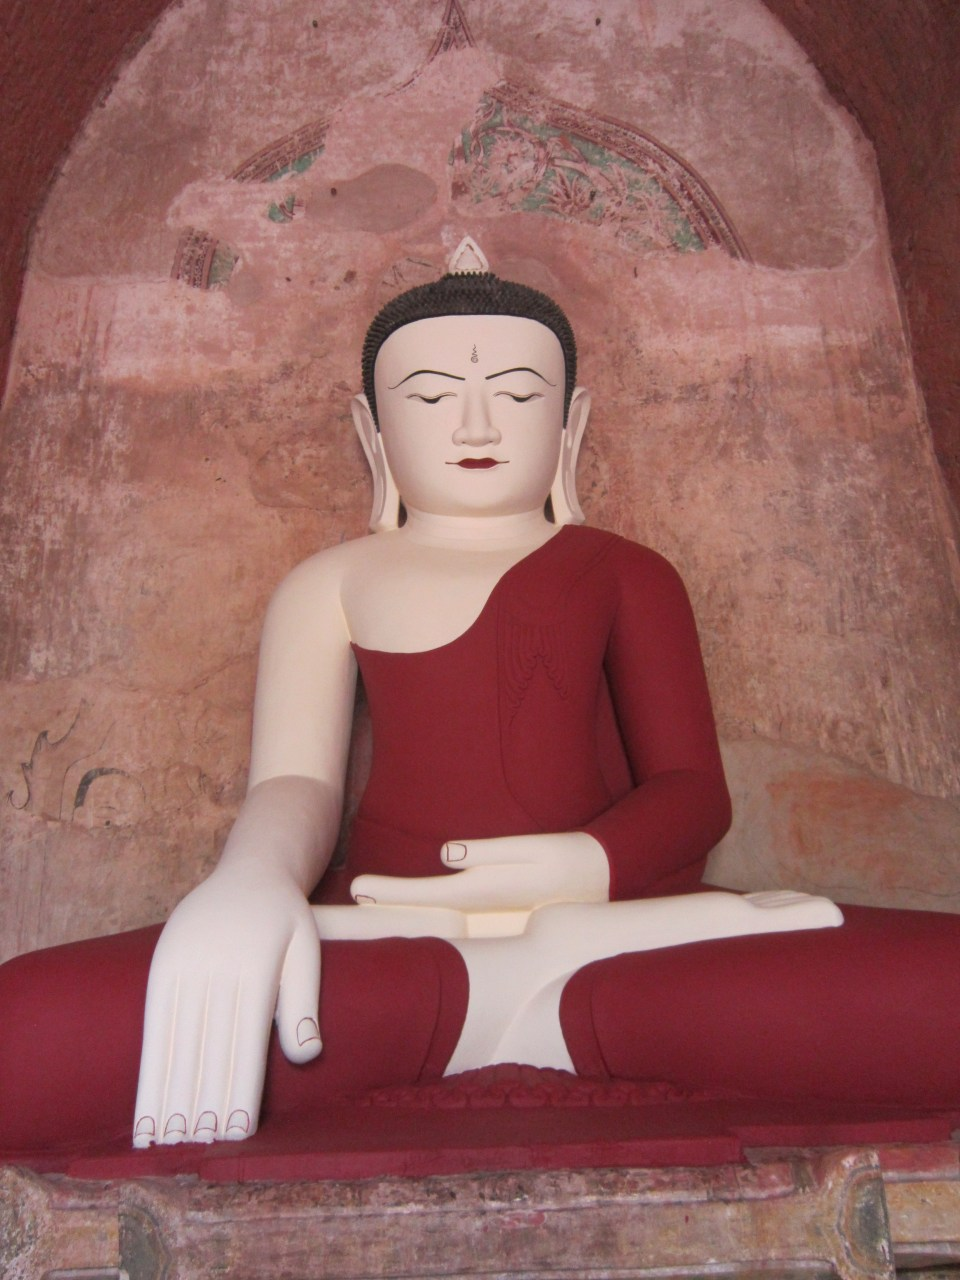 Robed Buddha statue in the Temples of Bagan